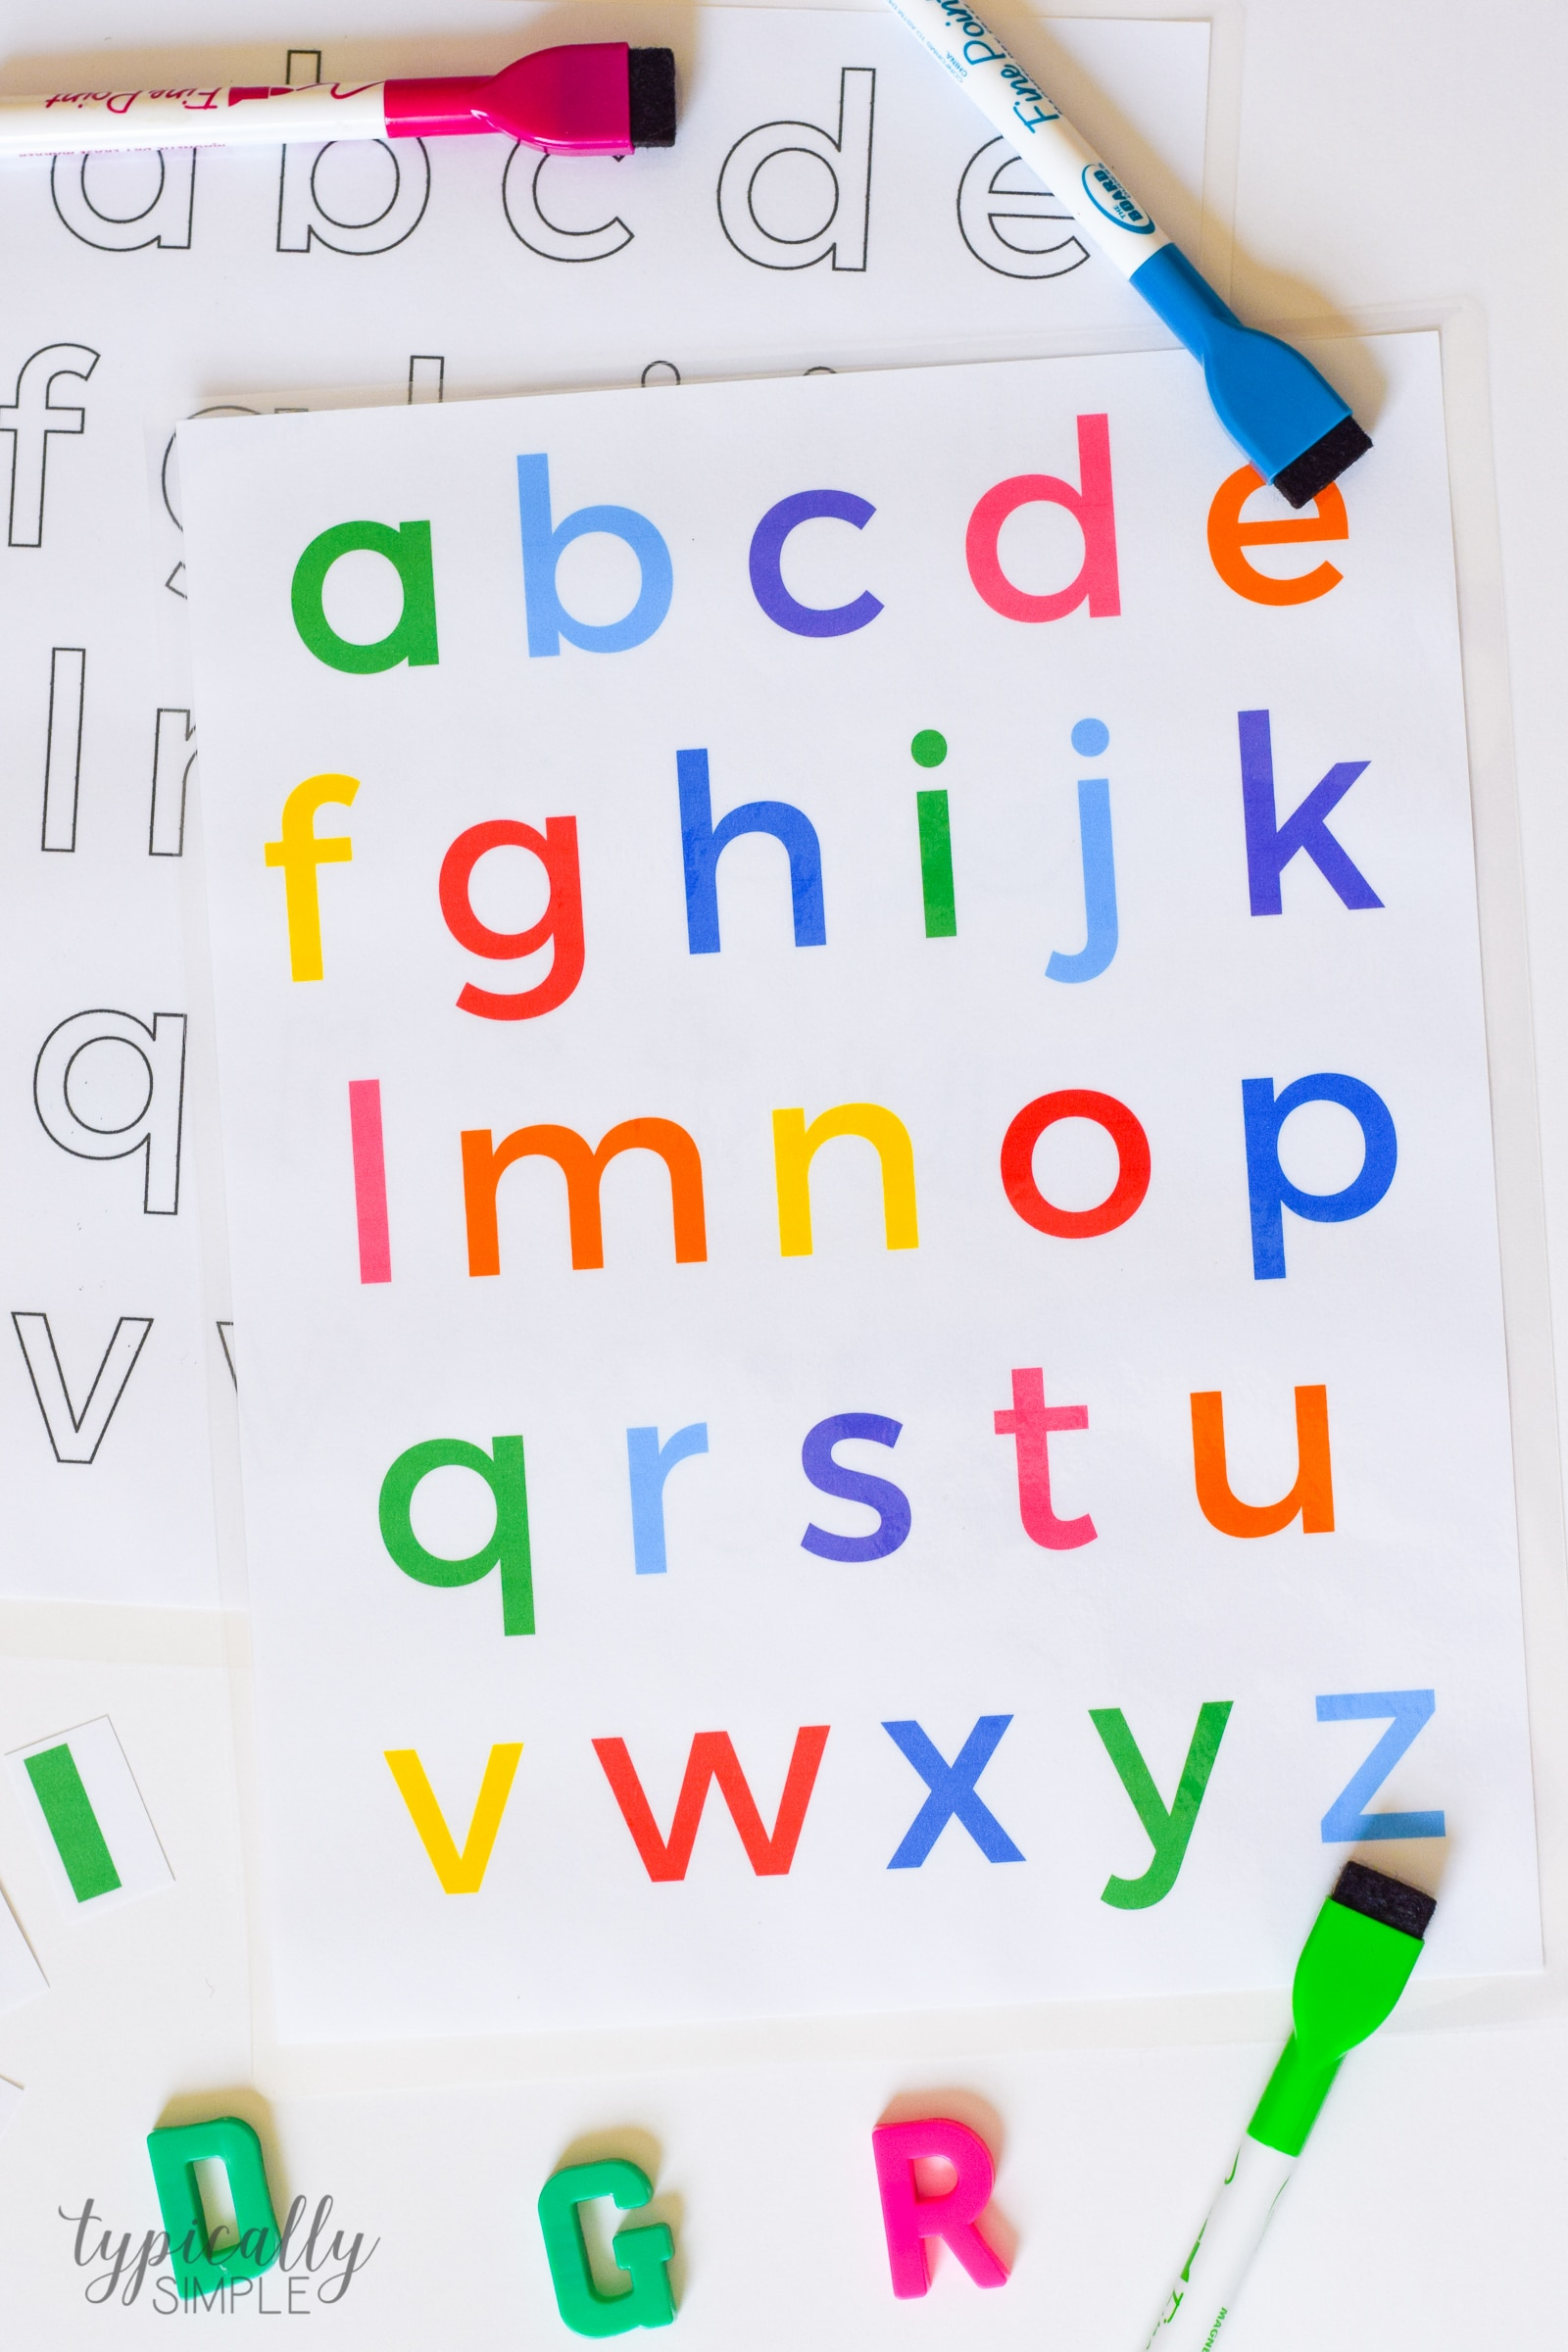 Alphabet Activities Lowercase Letters Printable Typically Simple